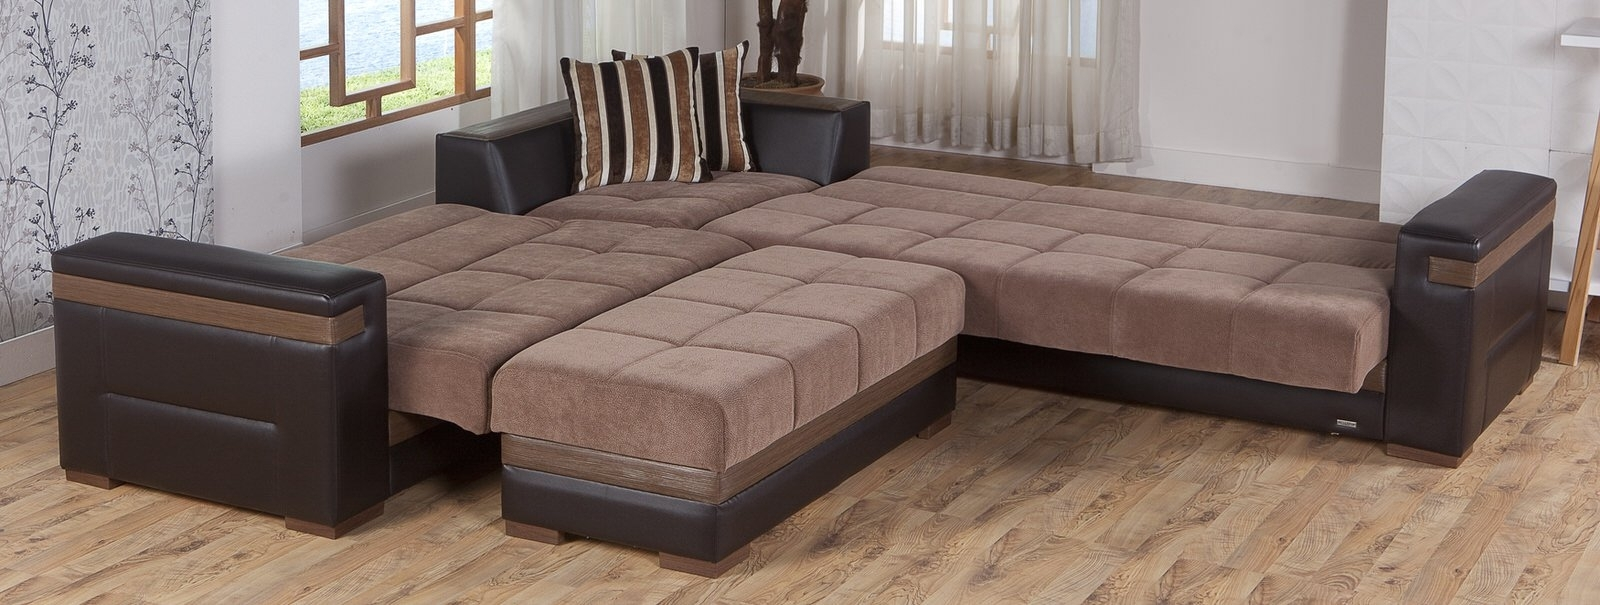 Moon Troya Brown Sectional Sofa Istikbal Sunset Sec Couch Create intended for Tenny Dark Grey 2 Piece Right Facing Chaise Sectionals With 2 Headrest (Image 18 of 30)